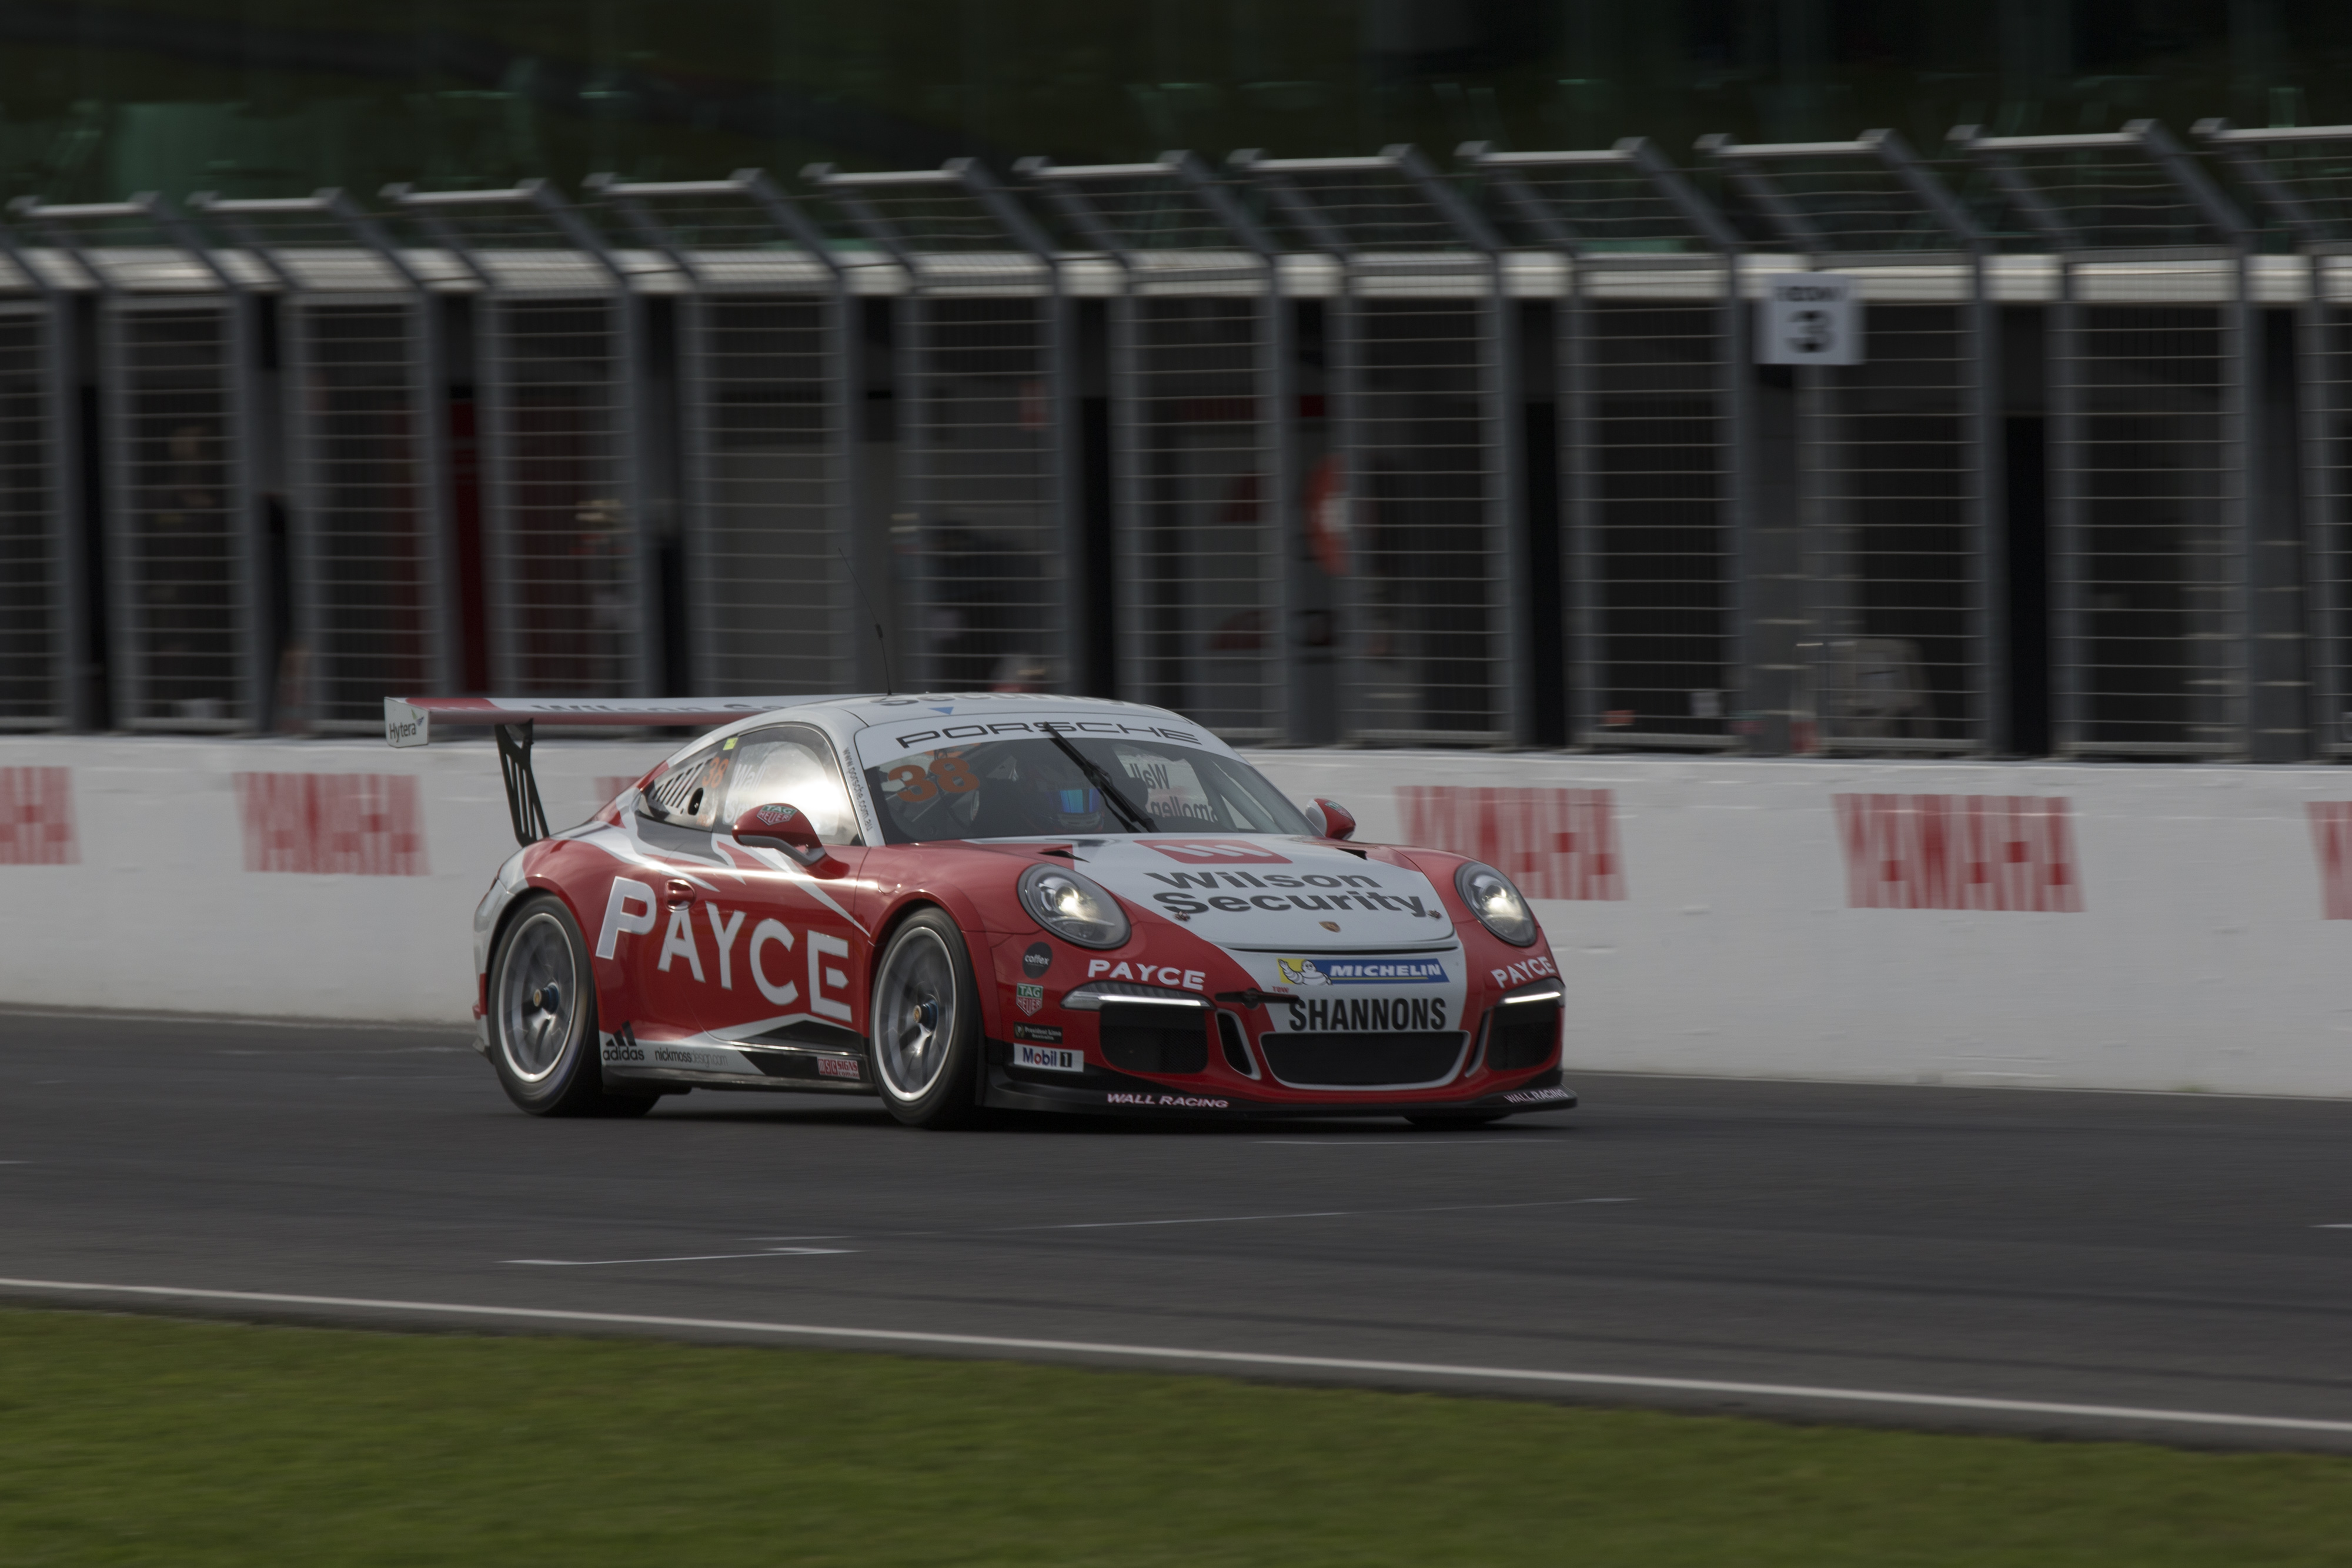 p38-Wall-CarreraCup-R3-2017-2298